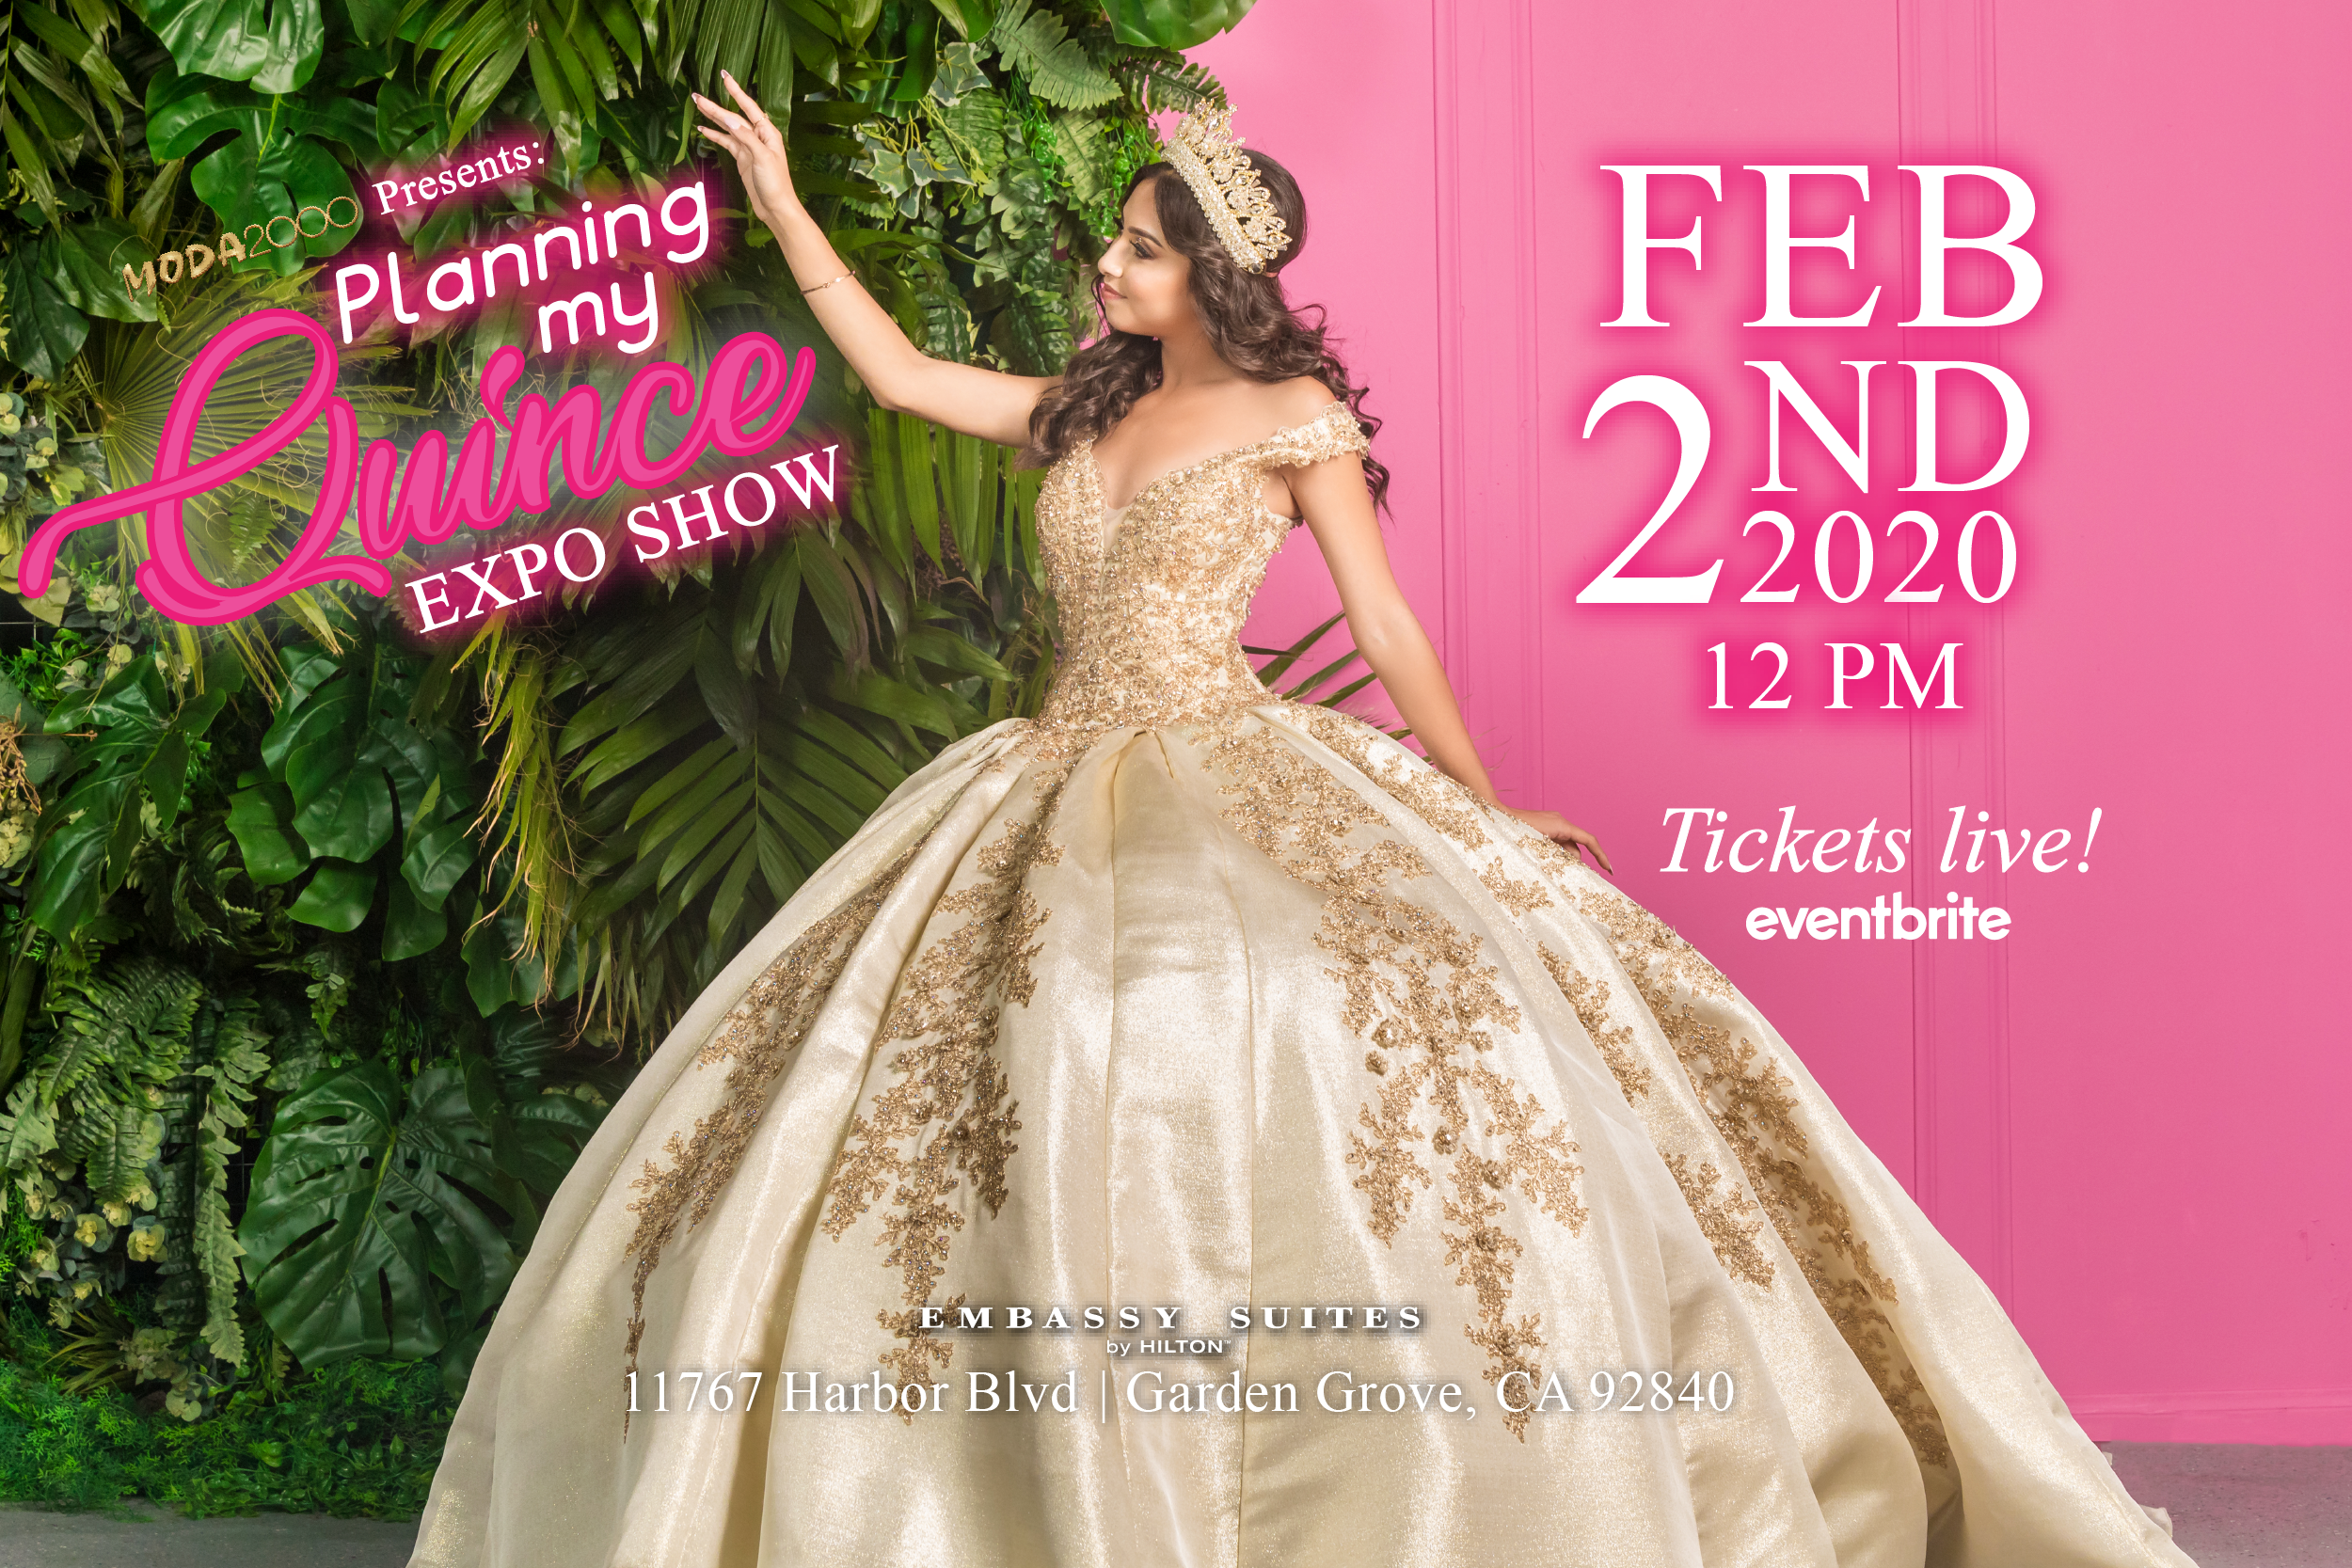 Planning My Quince Expo Show February 2nd 2020 Eventbrite Tickets Moda 2000